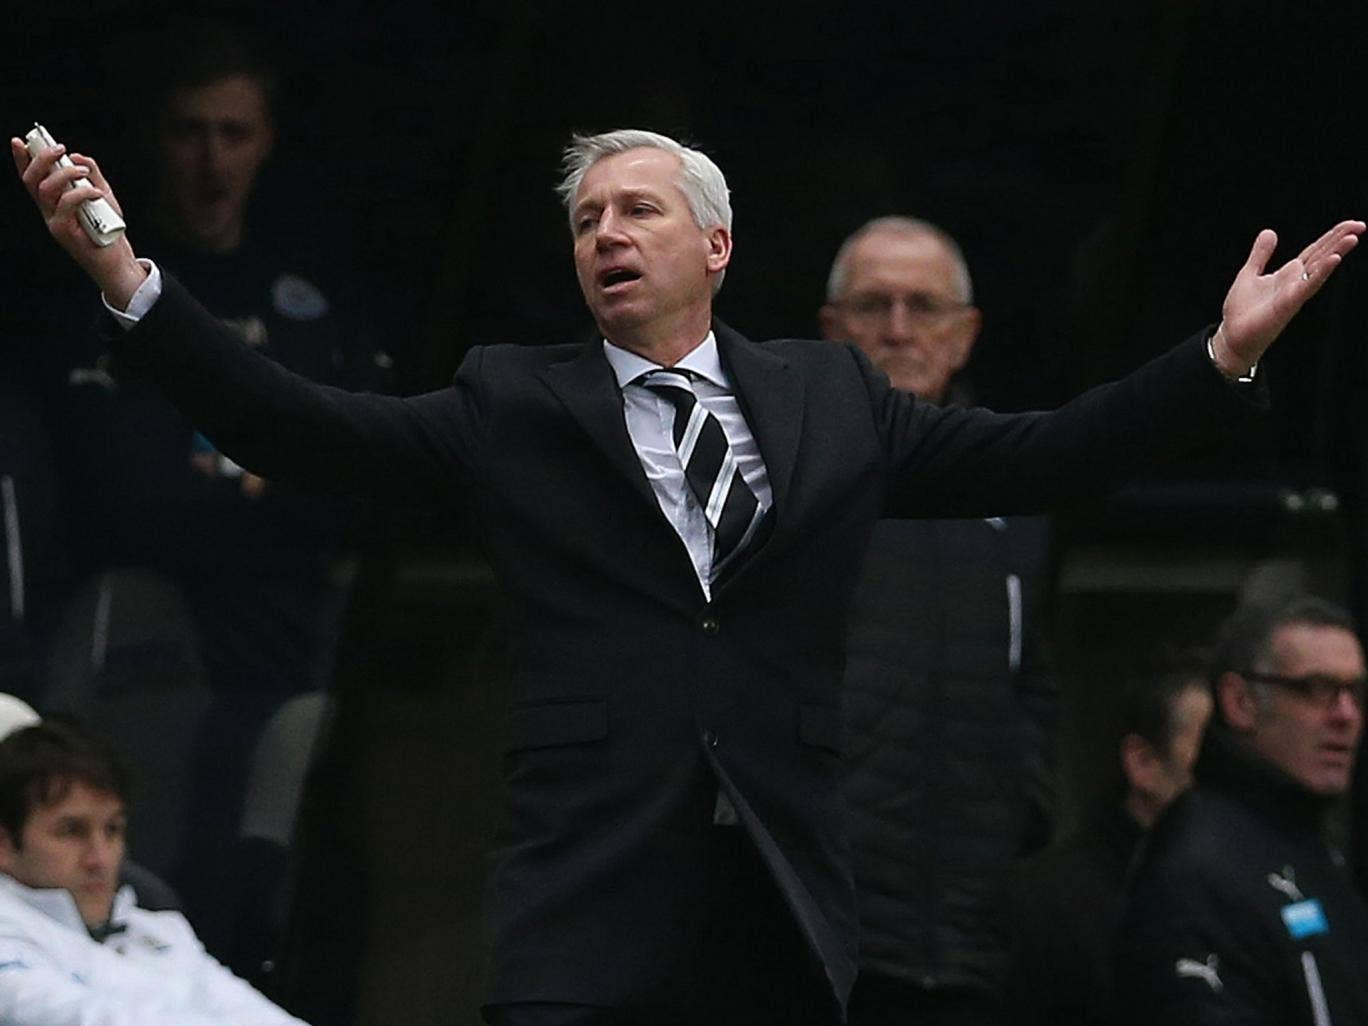 Alan Pardew is left furious and bemused as Cheik Tiote's goal is ruled out for offside during Newcastle's 2-0 defeat to Manchester City